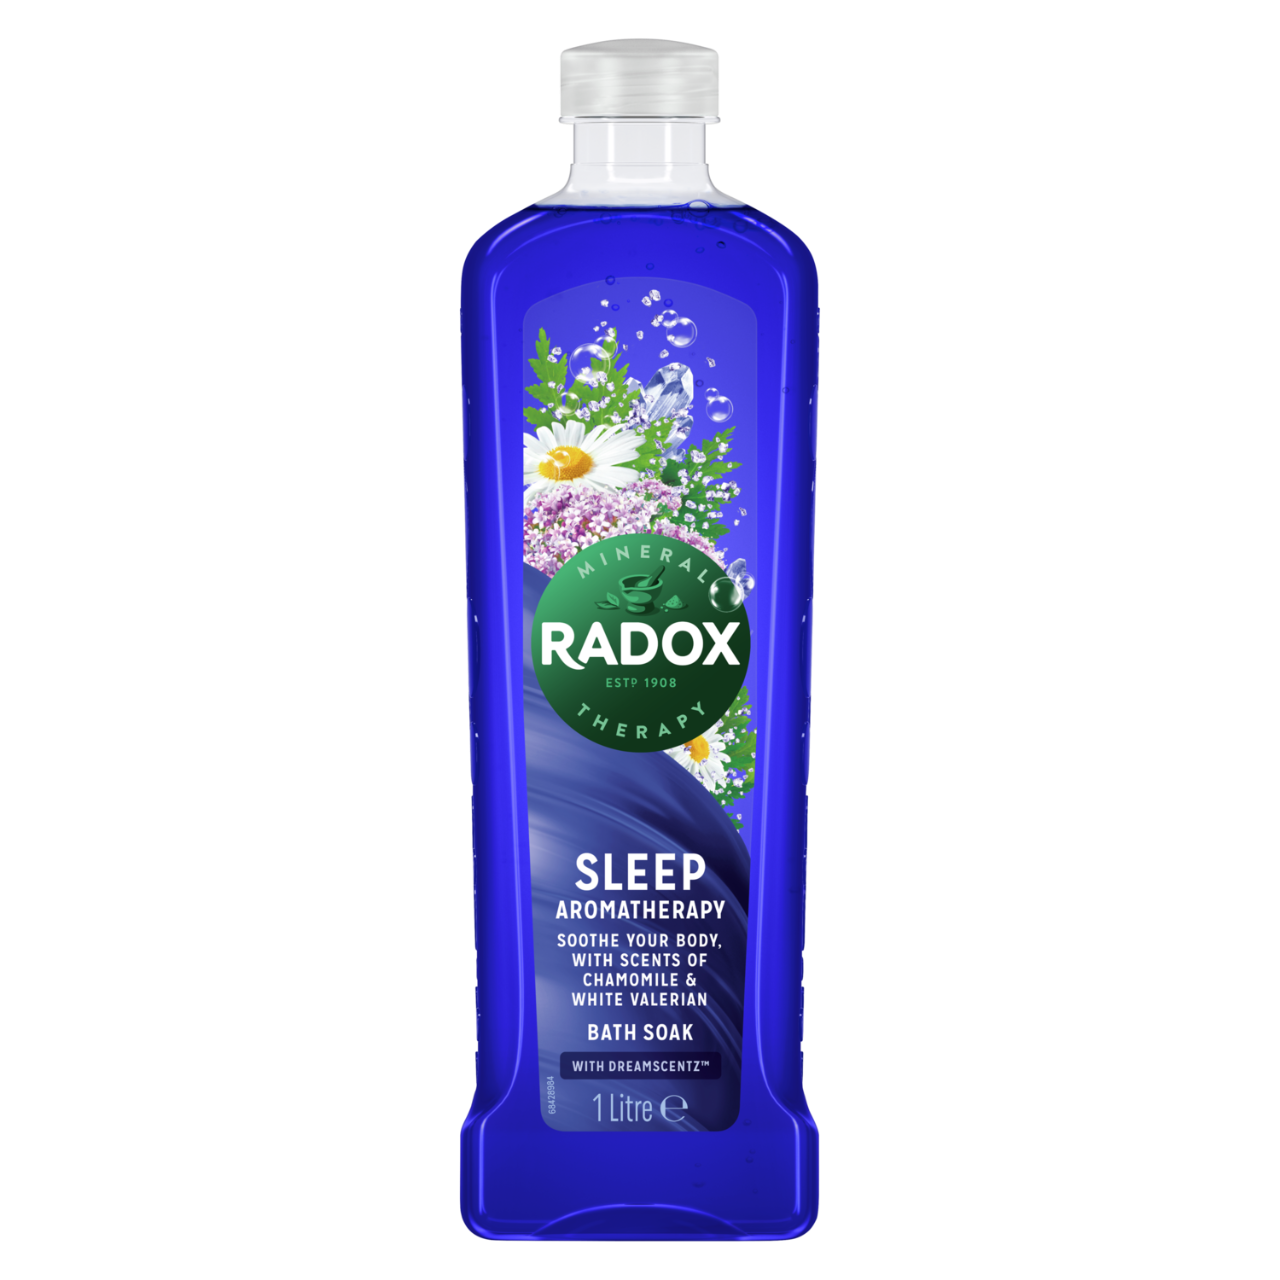 Radox Sleep Aromatherapy Soothe Your Body Bath Soak 1 L